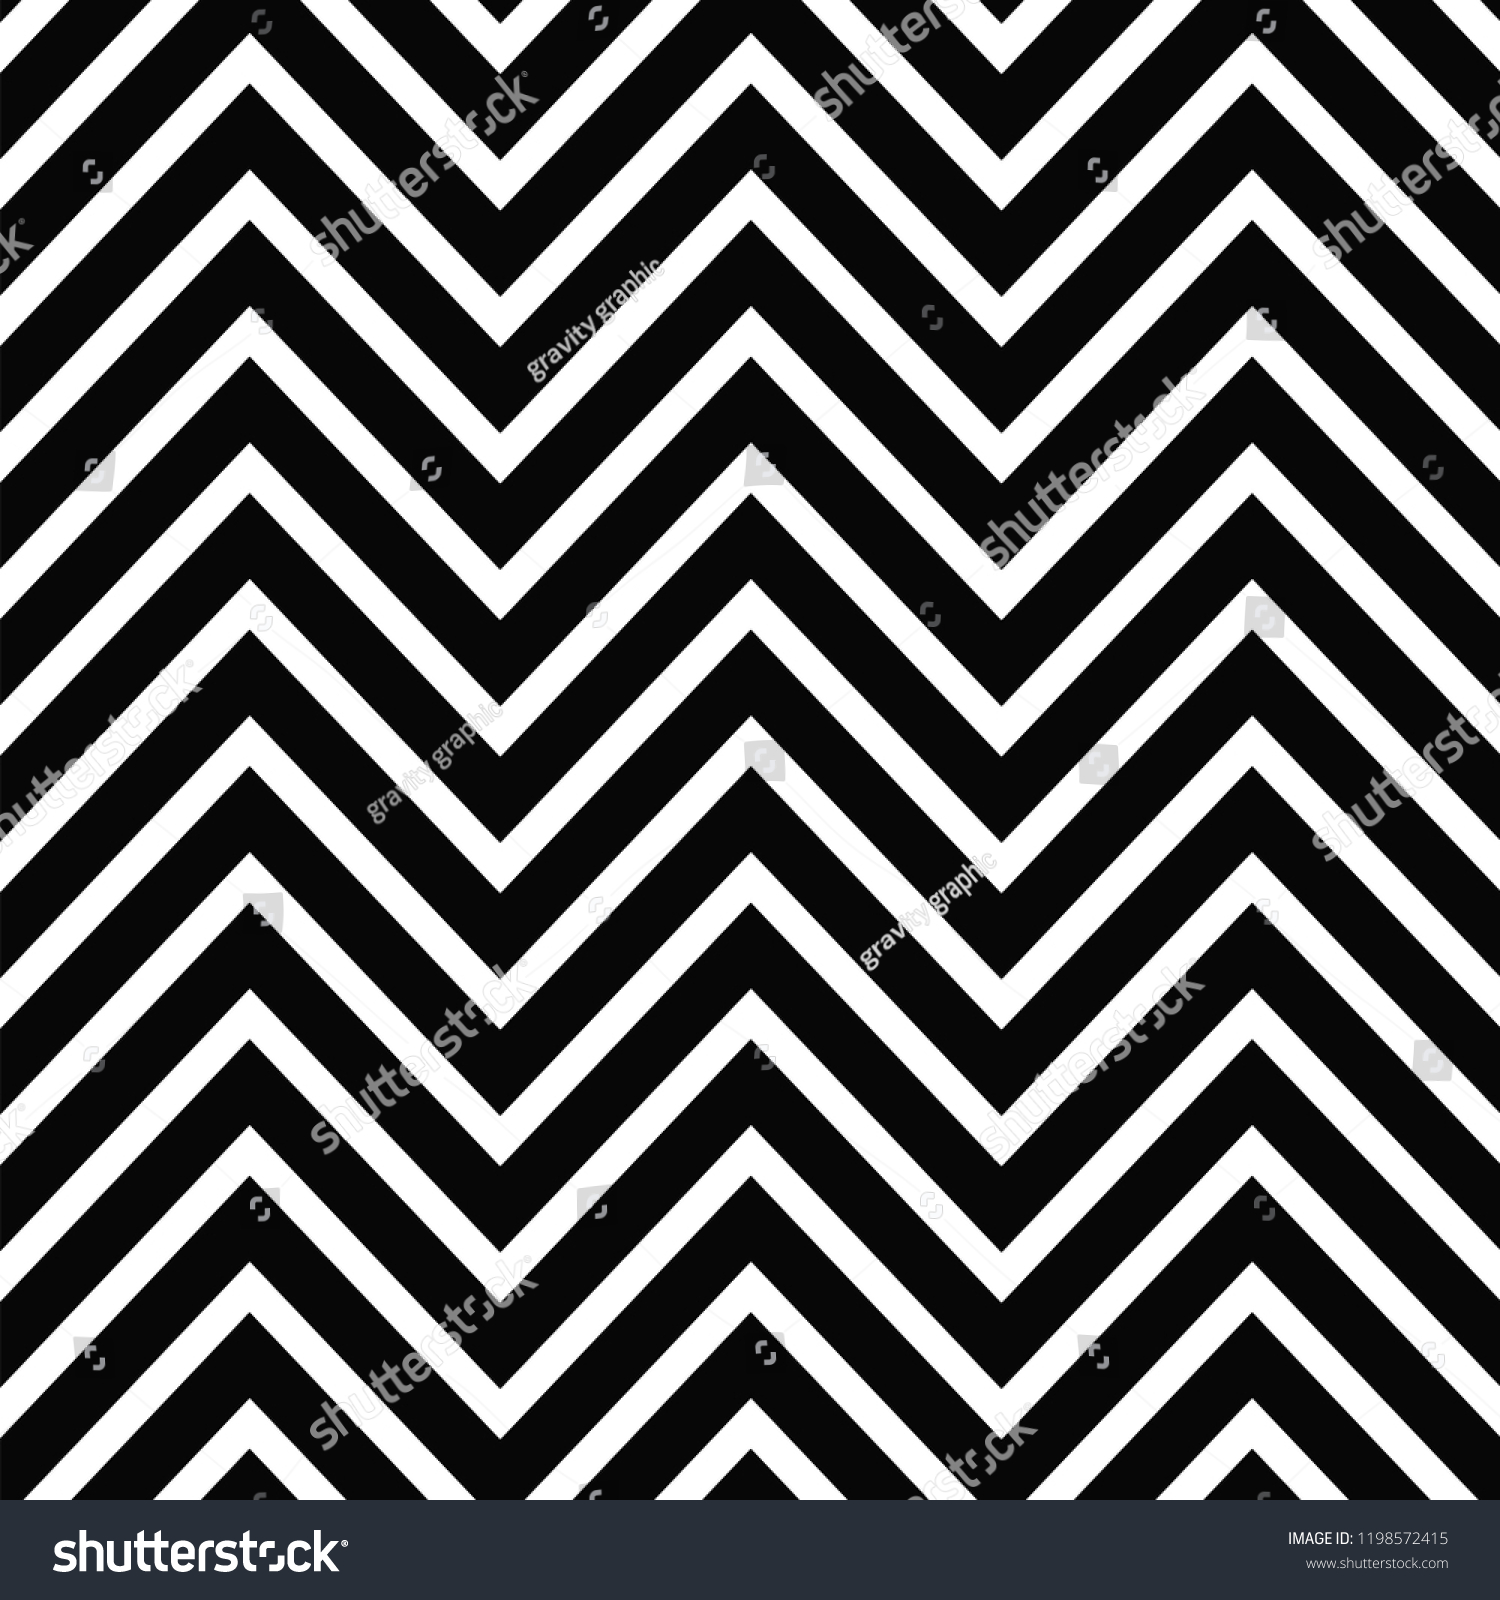 Geometric black and white patternsseamless vector background black and white texture graphic